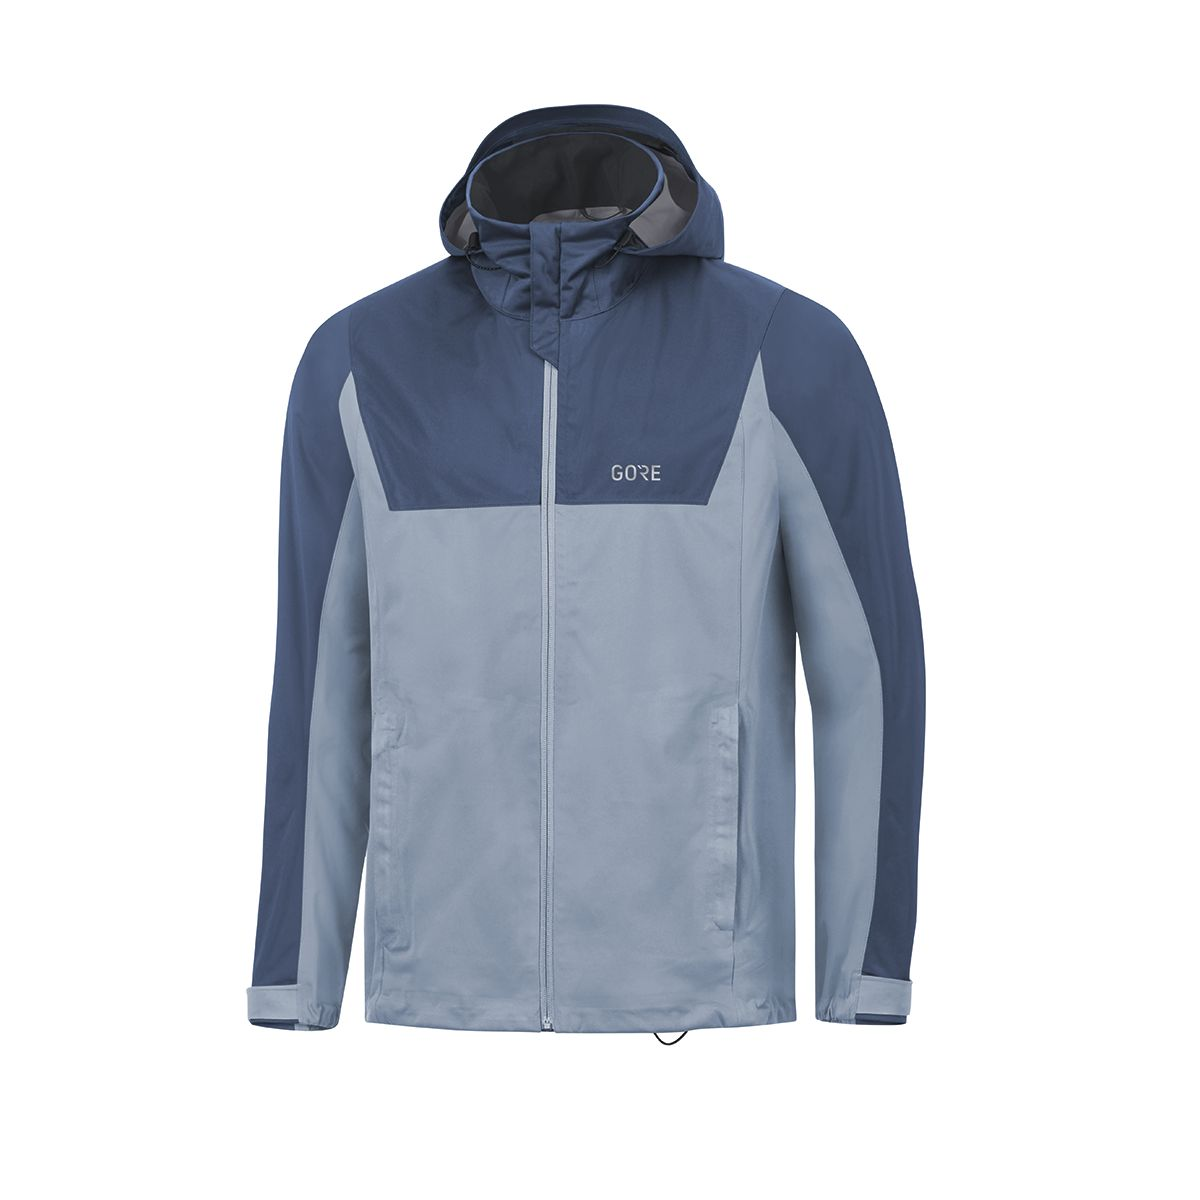 R3 GORE-TEX ACTIVE HOODED JACKET men's waterproof jacket